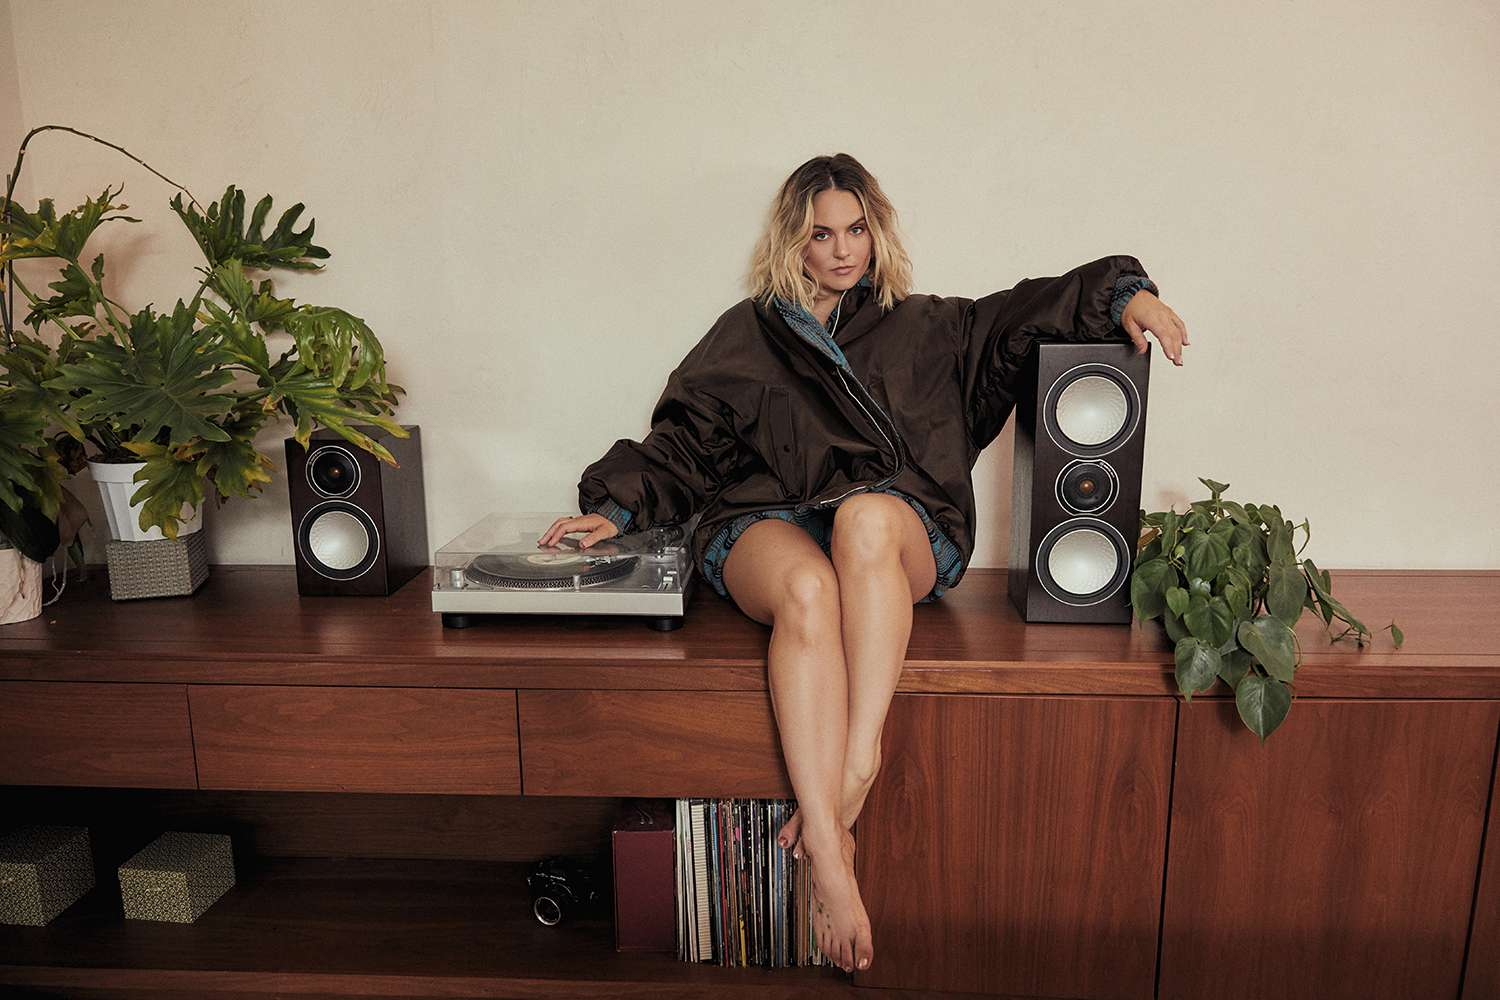 JoJo sitting on top of media cabinet next to record player